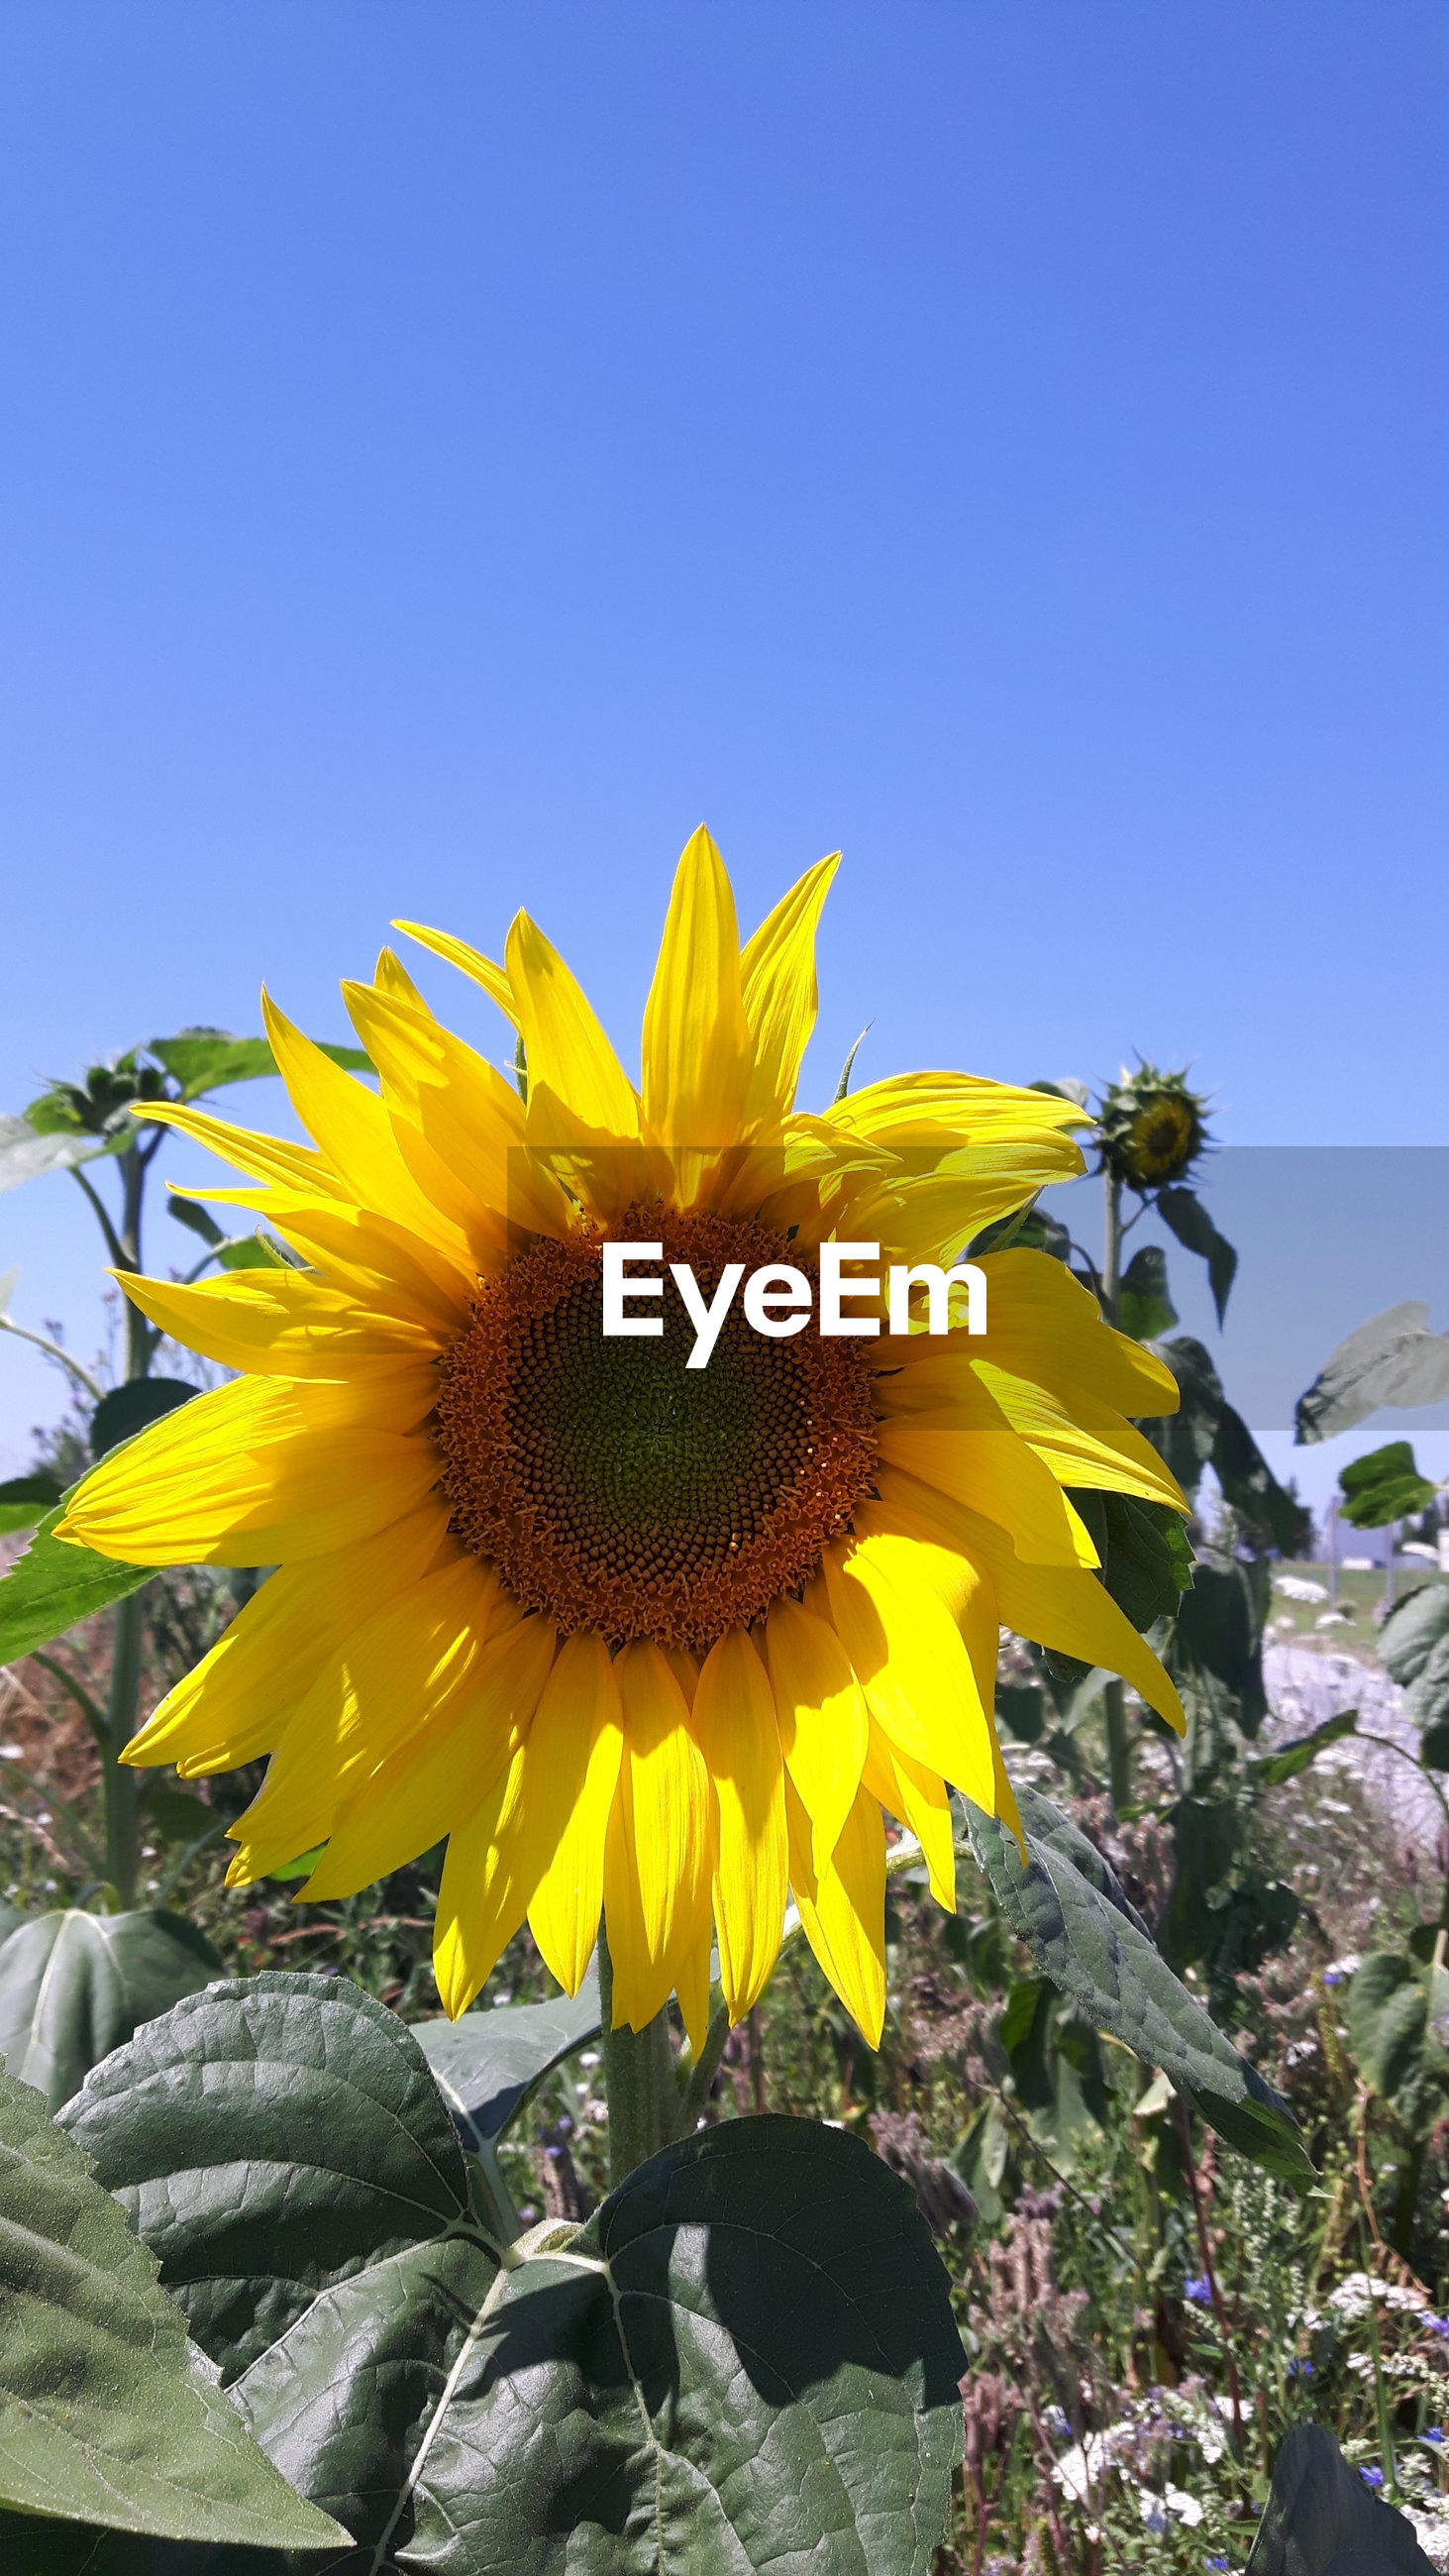 Sunflower blooming on field against clear blue sky